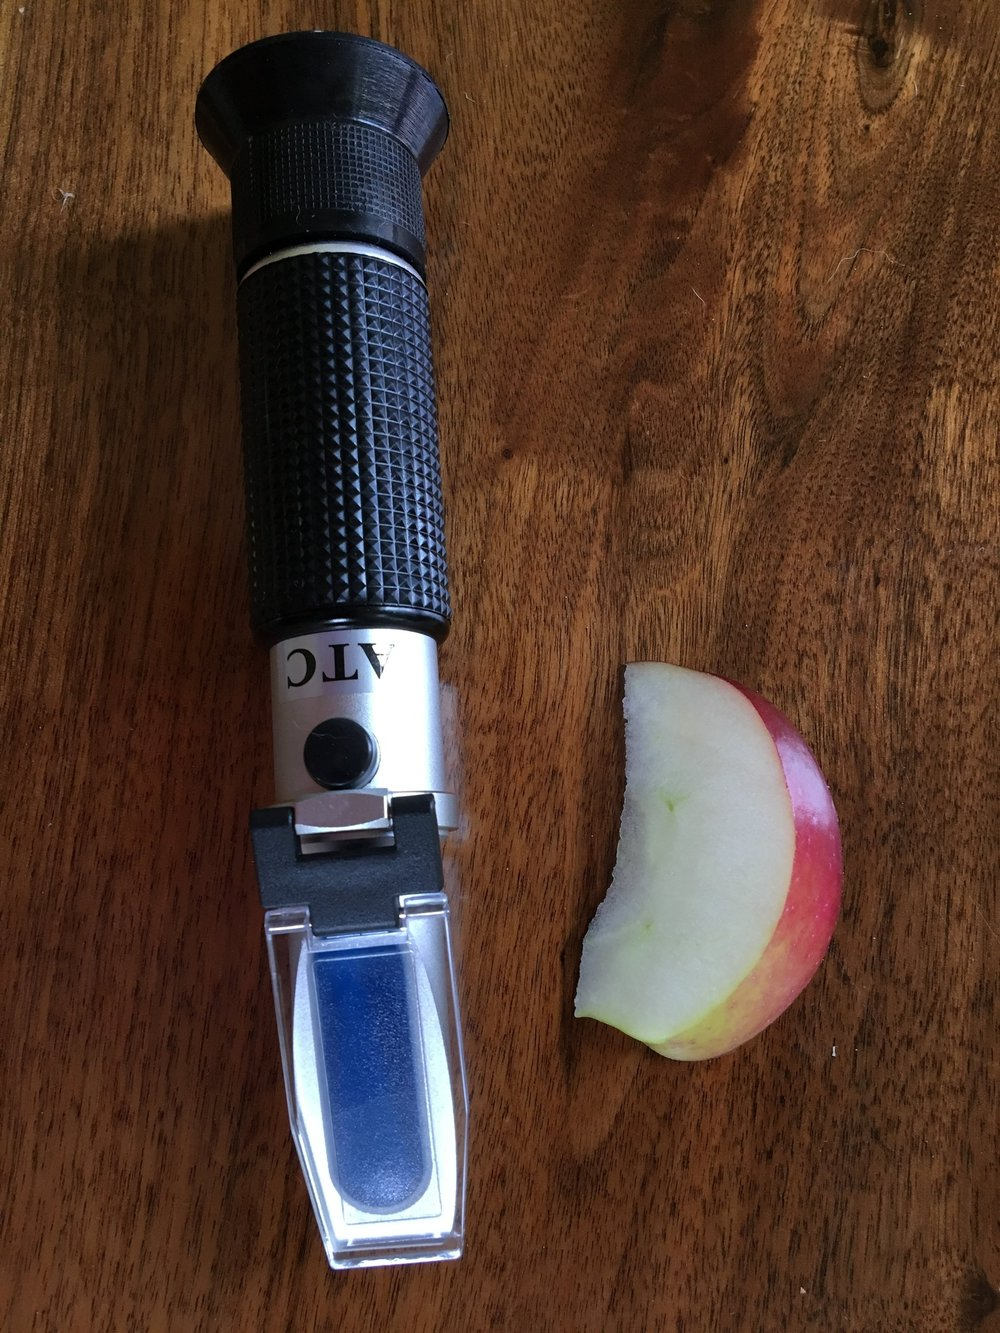 Above: A refractometer and an apple slice.  Squeezing a couple drops of juice from the apple onto the refractometer, one can quickly measure brix and determine if the apple has potential to make a good cider.